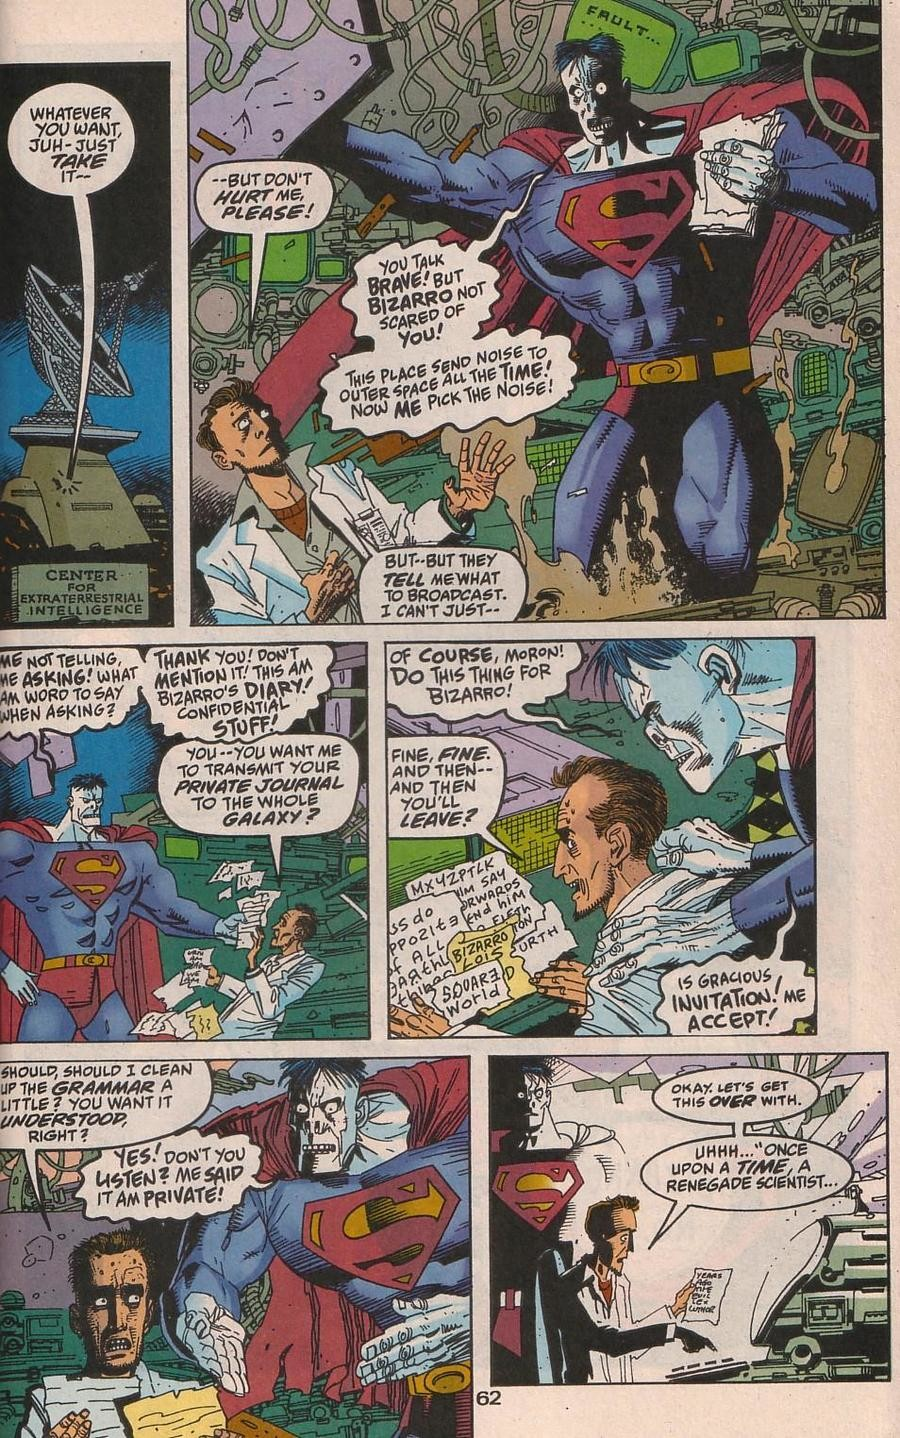 Bizarro Must Think. . WHATEVER YOU 1' Fit ST TAKE THEY Emang- iall UPON A A src,. at least lex misses him when he dies